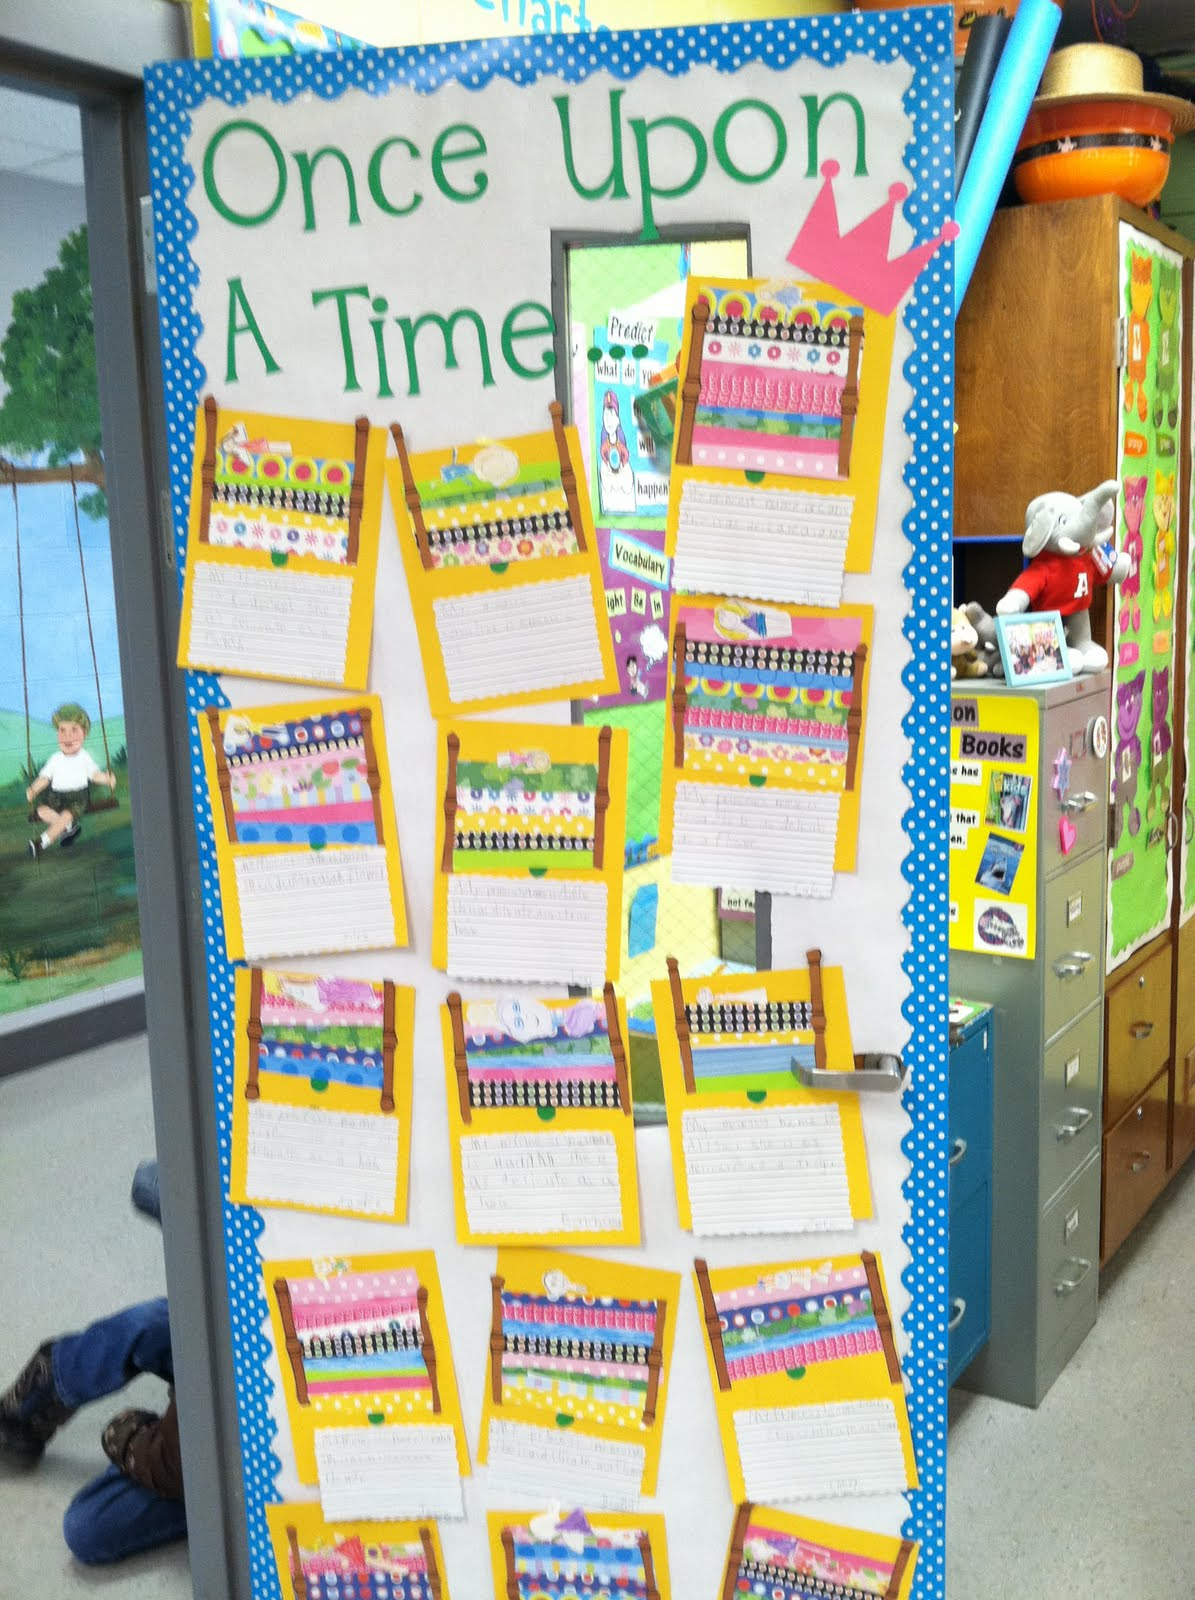 Life In First Grade The Princess And The Pea Center Activity In Action